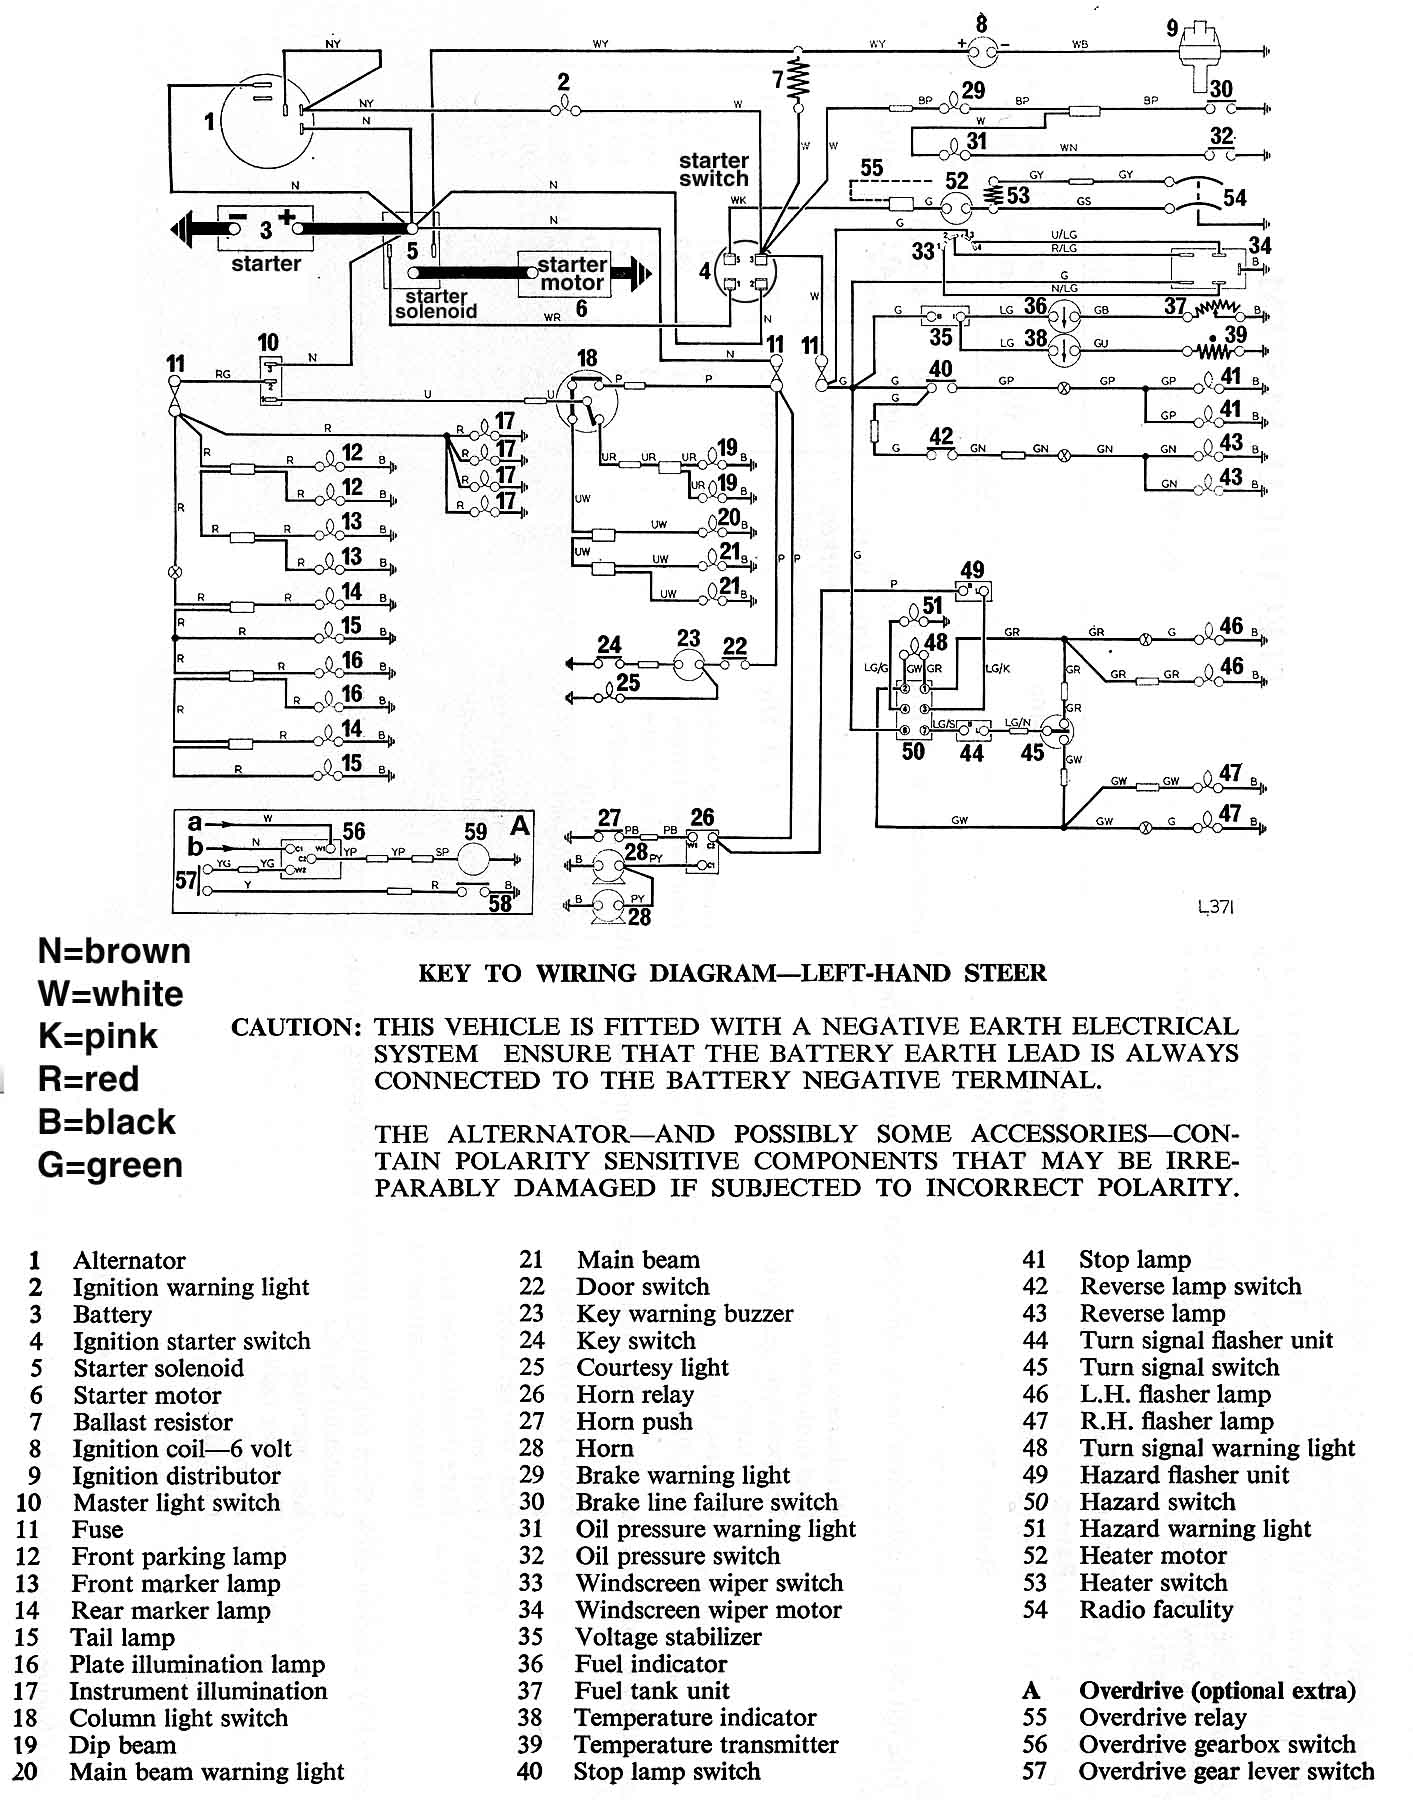 1971 Spitfire Wiring Diagram Schematics Diagrams Amc Javelin Engine And Triumph Gt6 Herald Rh Triumphspitfire Com 1996 Zeppelin Zm19